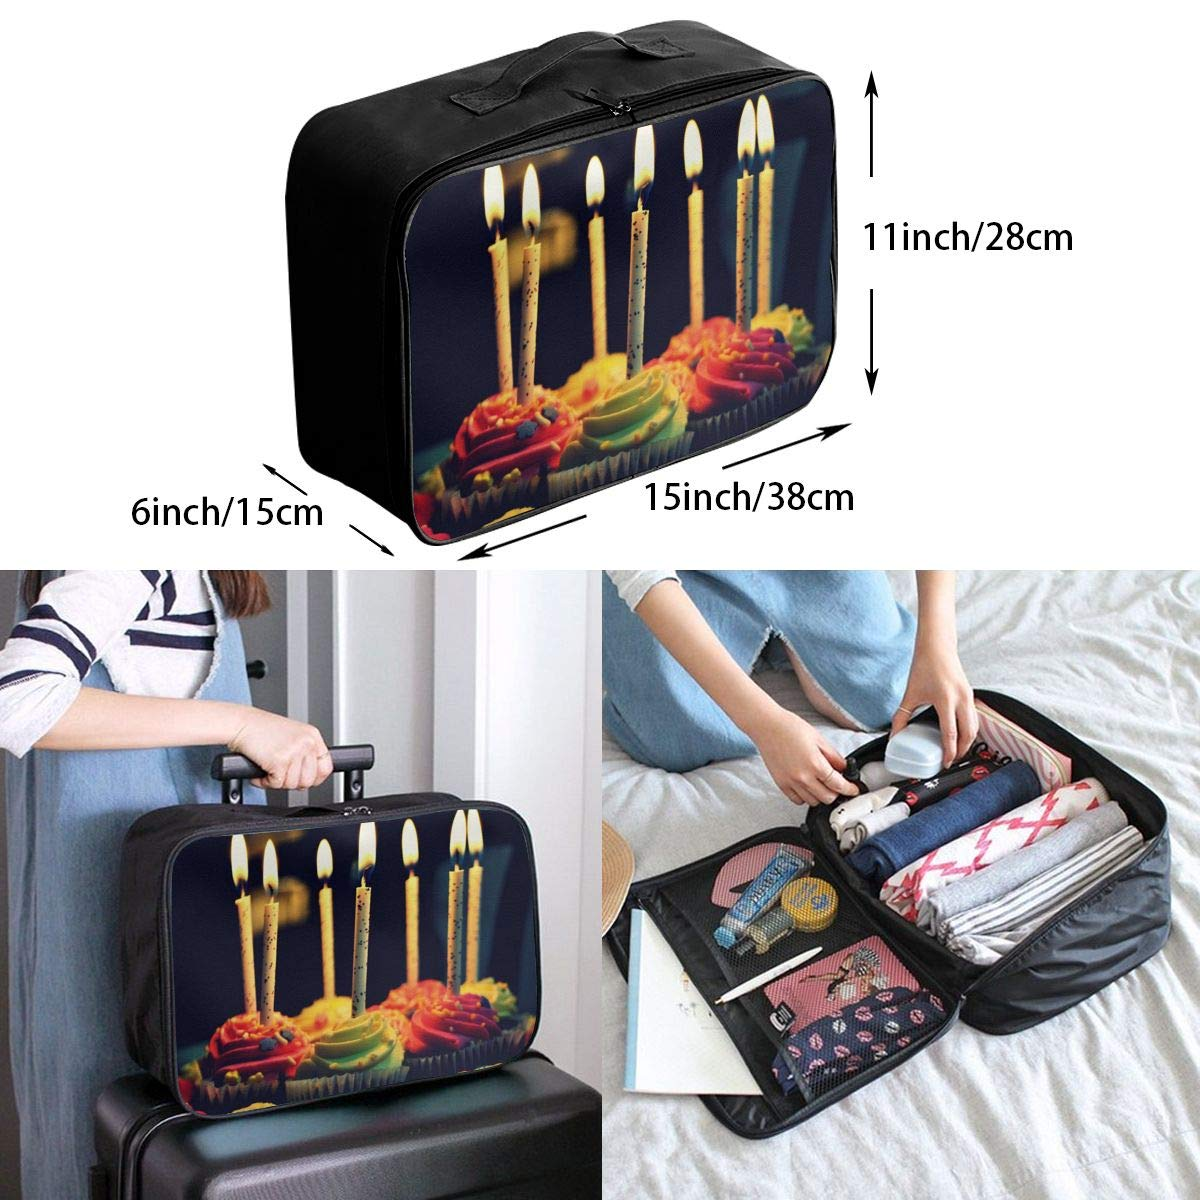 Travel Luggage Duffle Bag Lightweight Portable Handbag Cupcake Large Capacity Waterproof Foldable Storage Tote